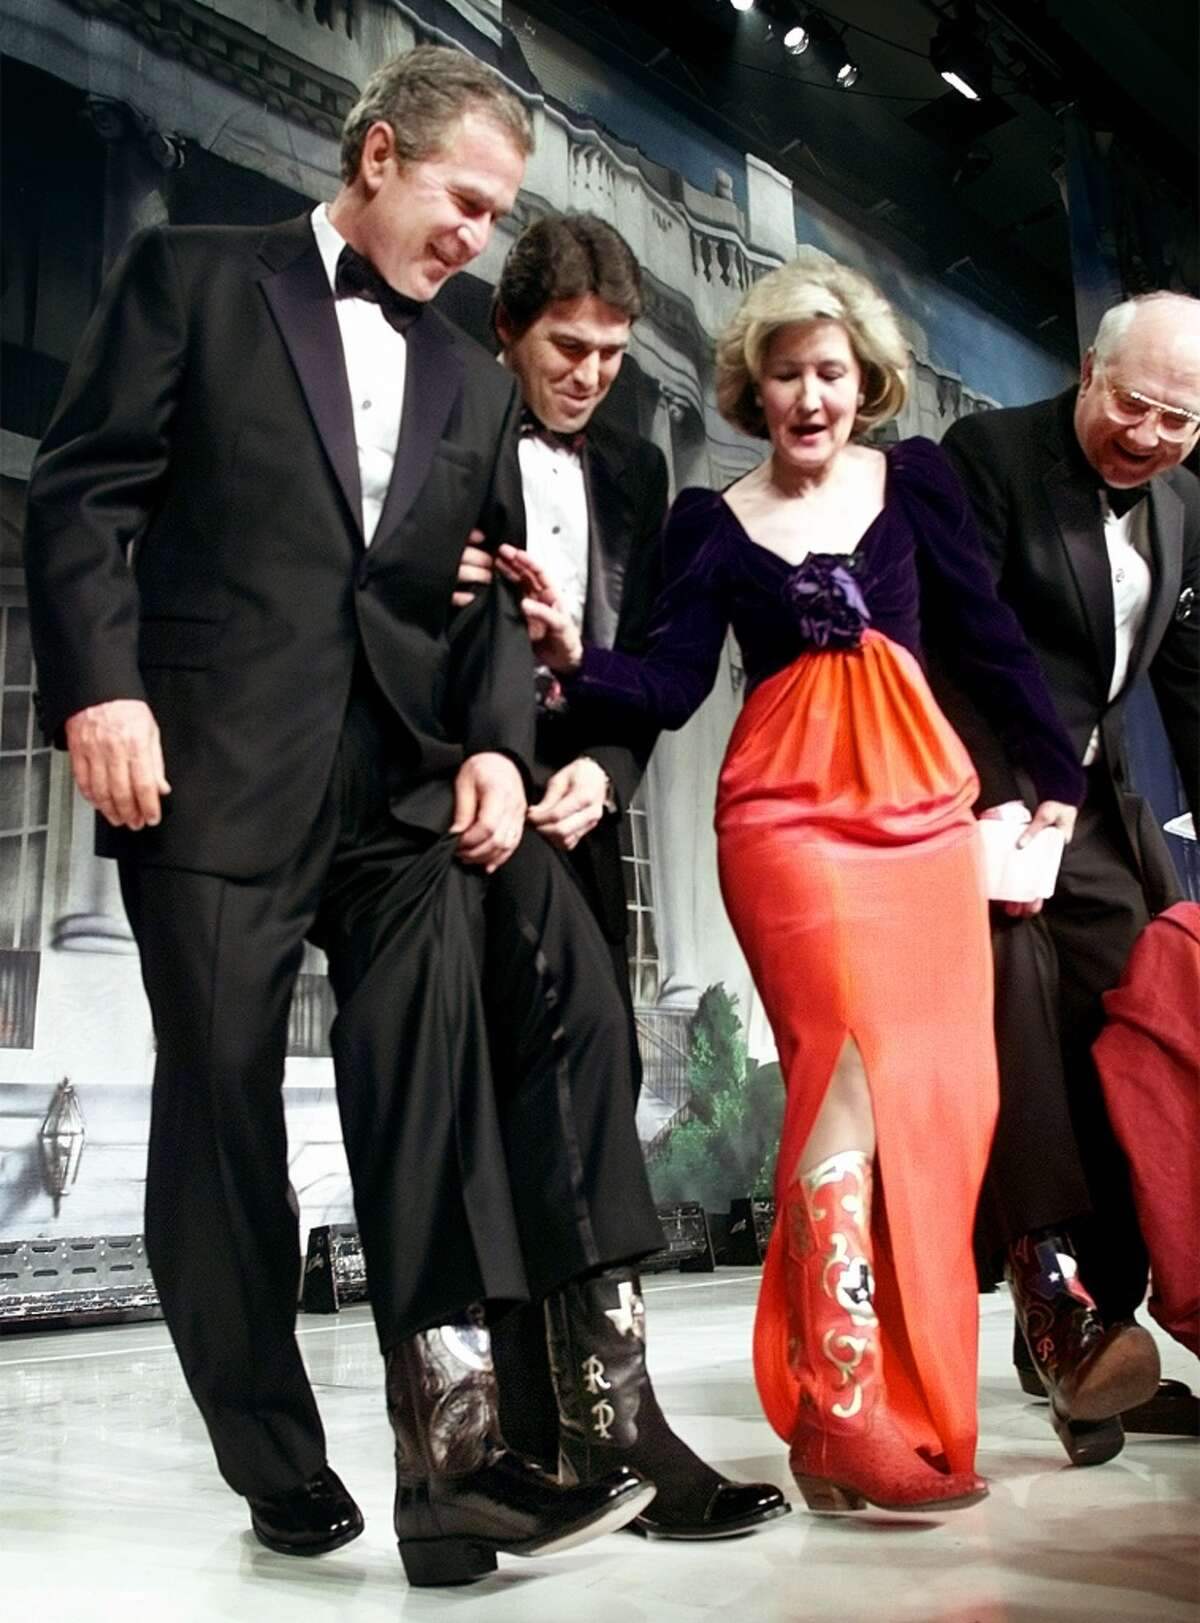 Then President-elect Bush compares boots with Rick Perry, Sen. Kay Bailey Hutchison and Sen. Phil Gramm on stage during the Black Tie and Boots ball in Washington Friday night, Jan. 19, 2001.